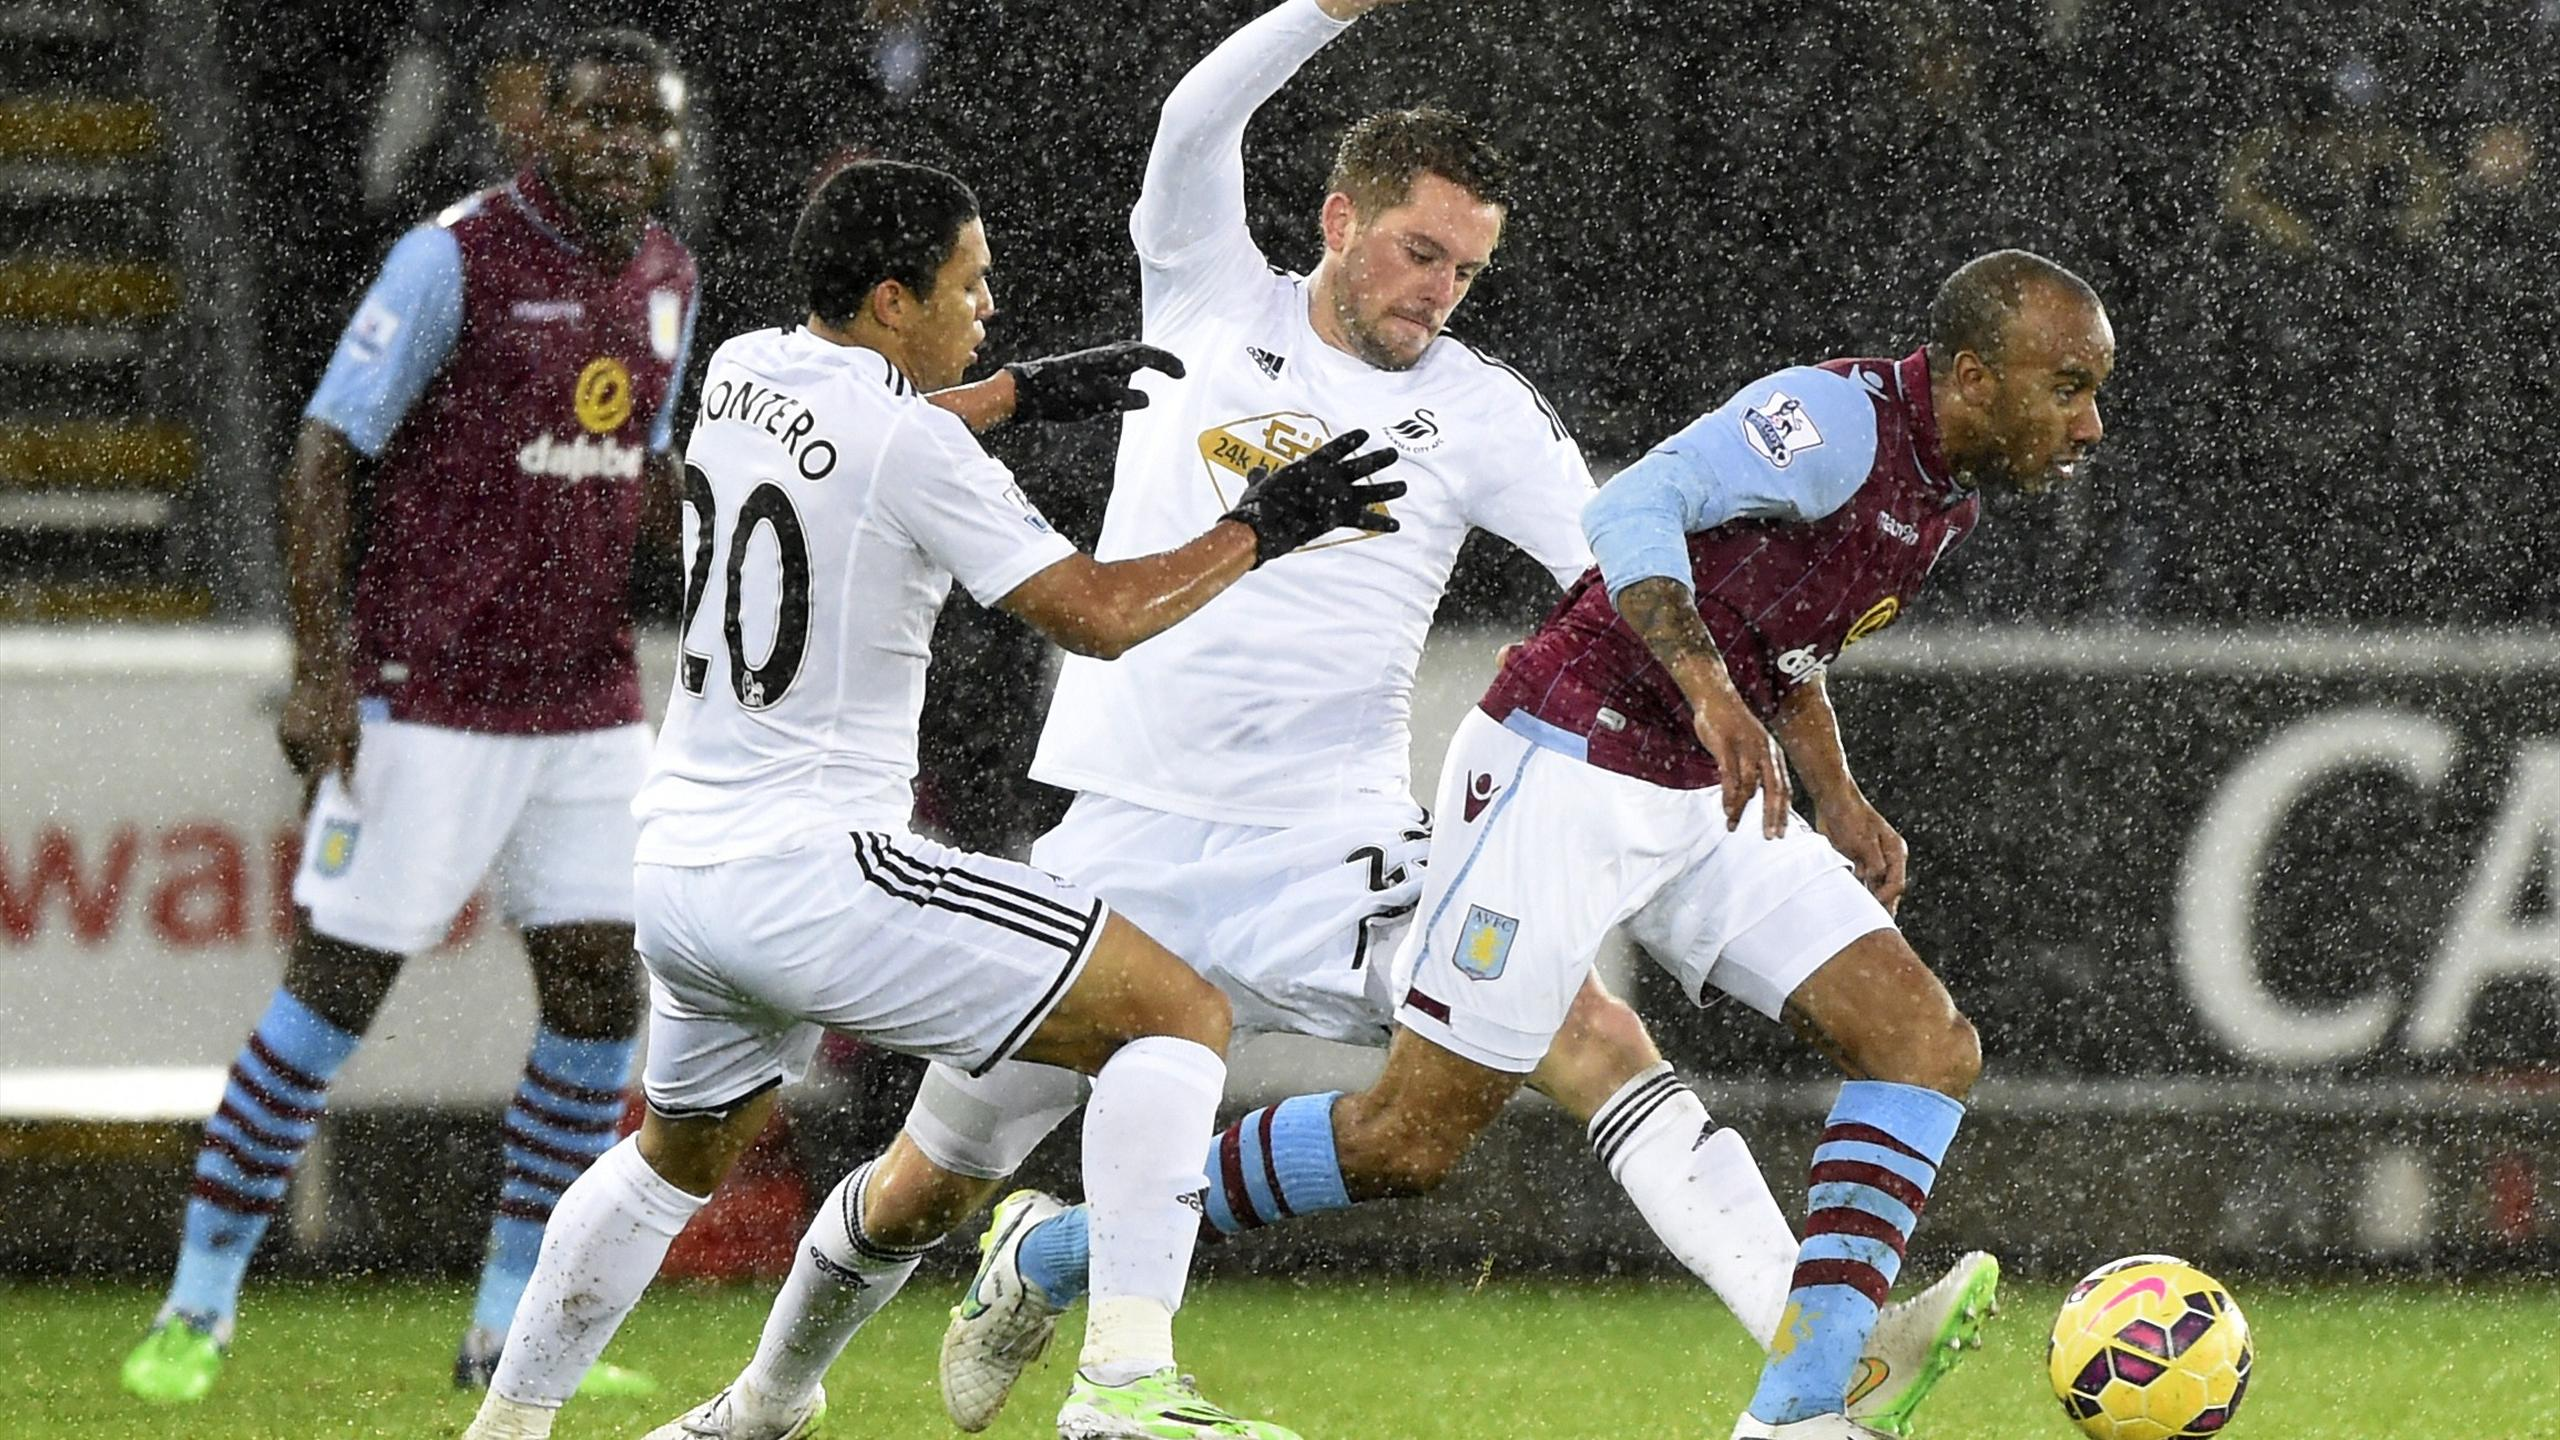 Video: Swansea City vs Aston Villa